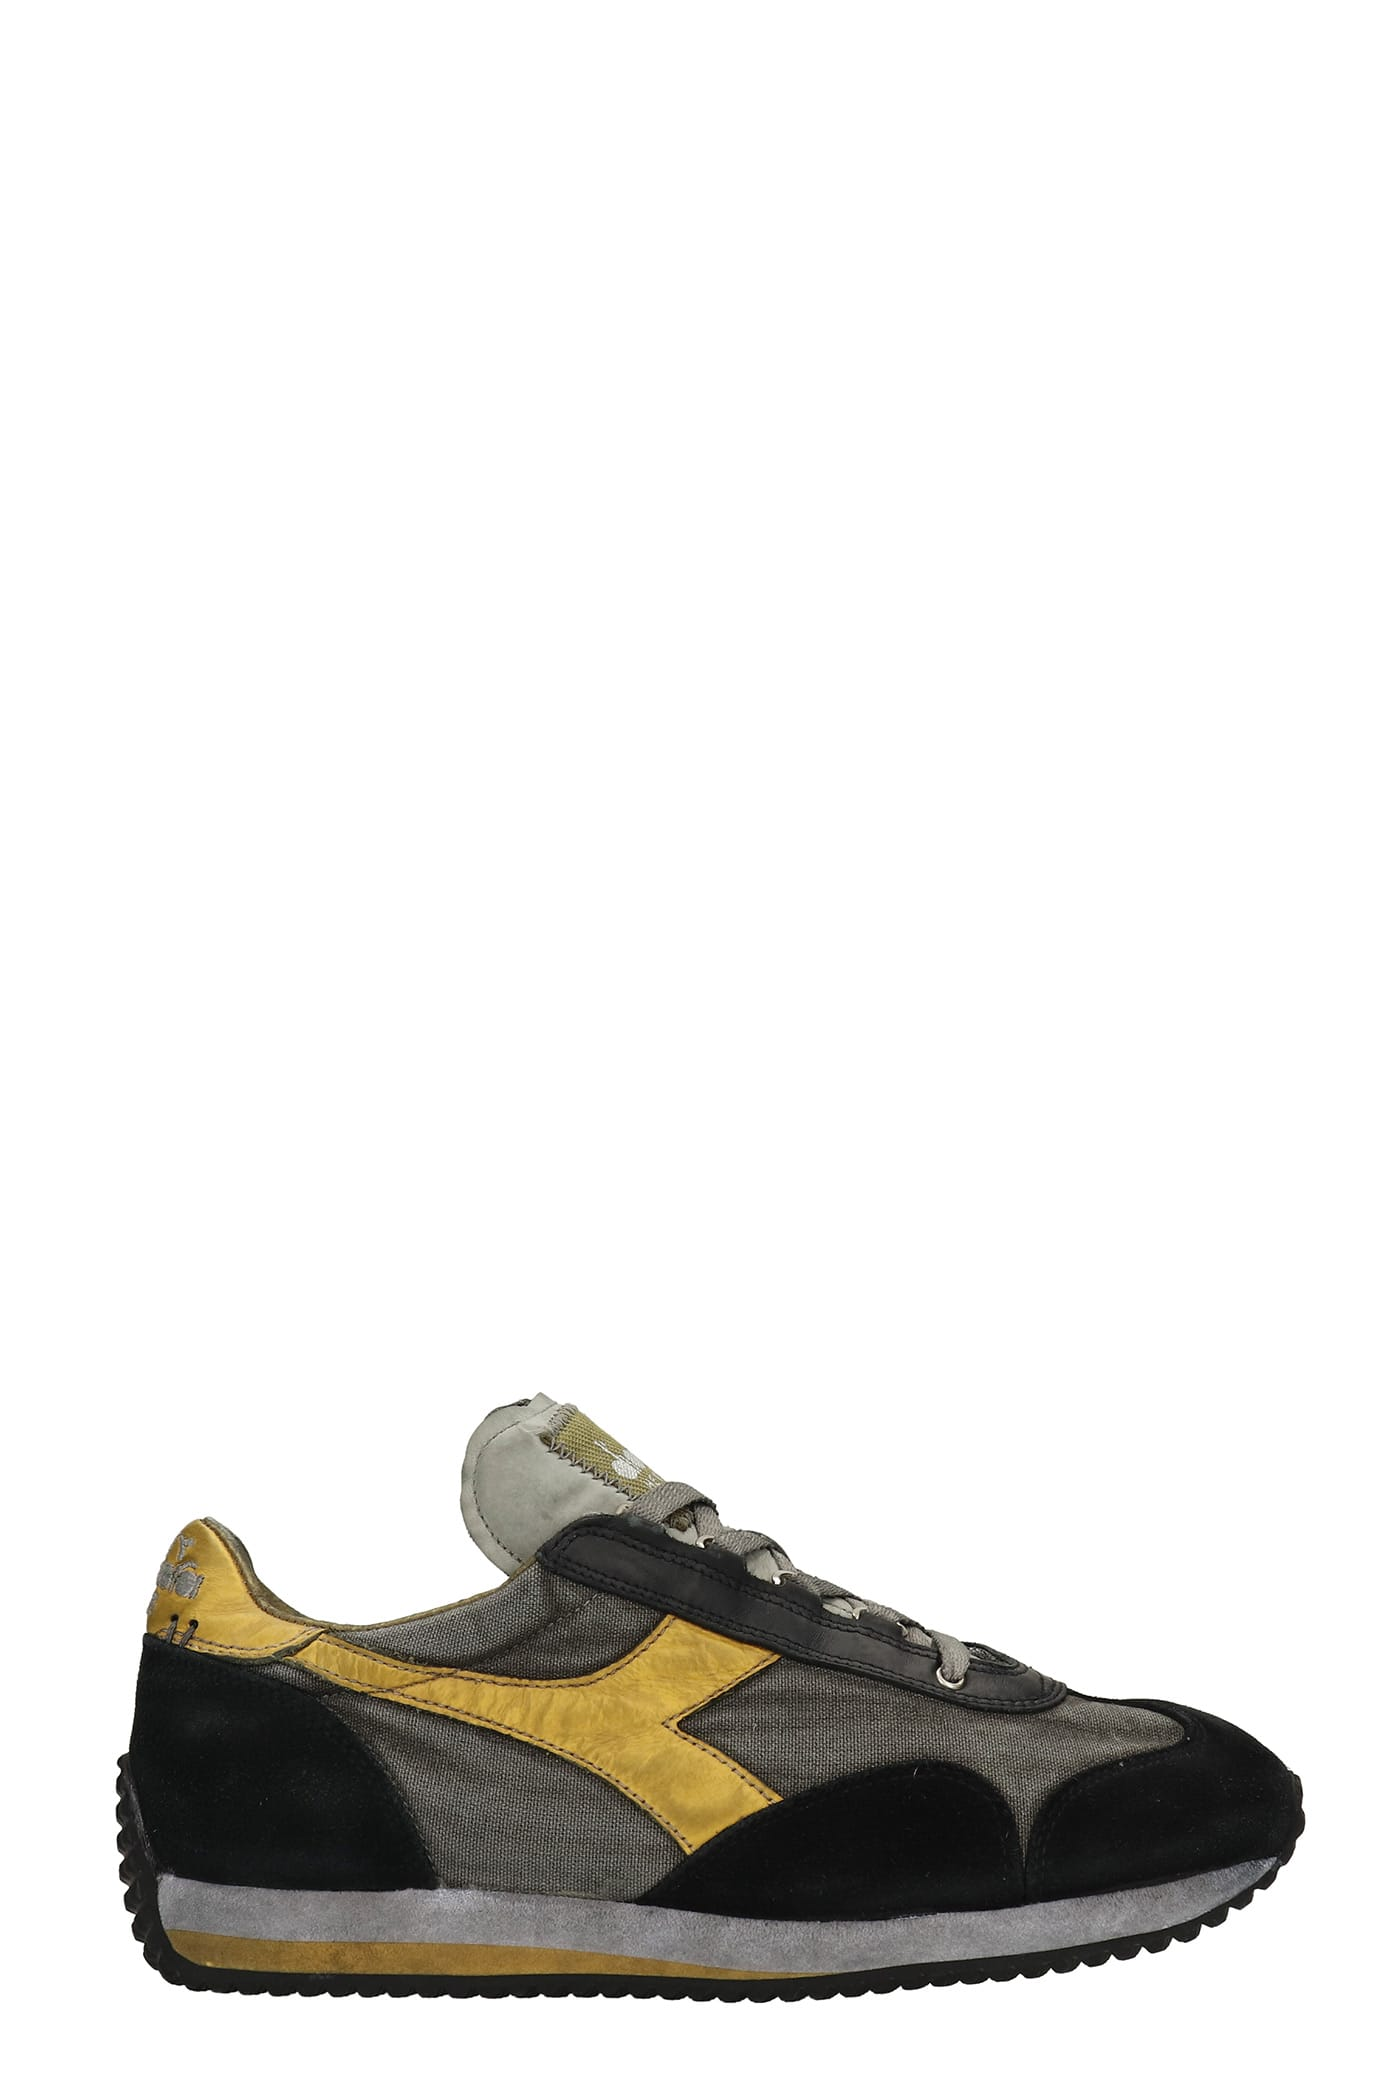 Equipe H Sneakers In Black Suede And Fabric